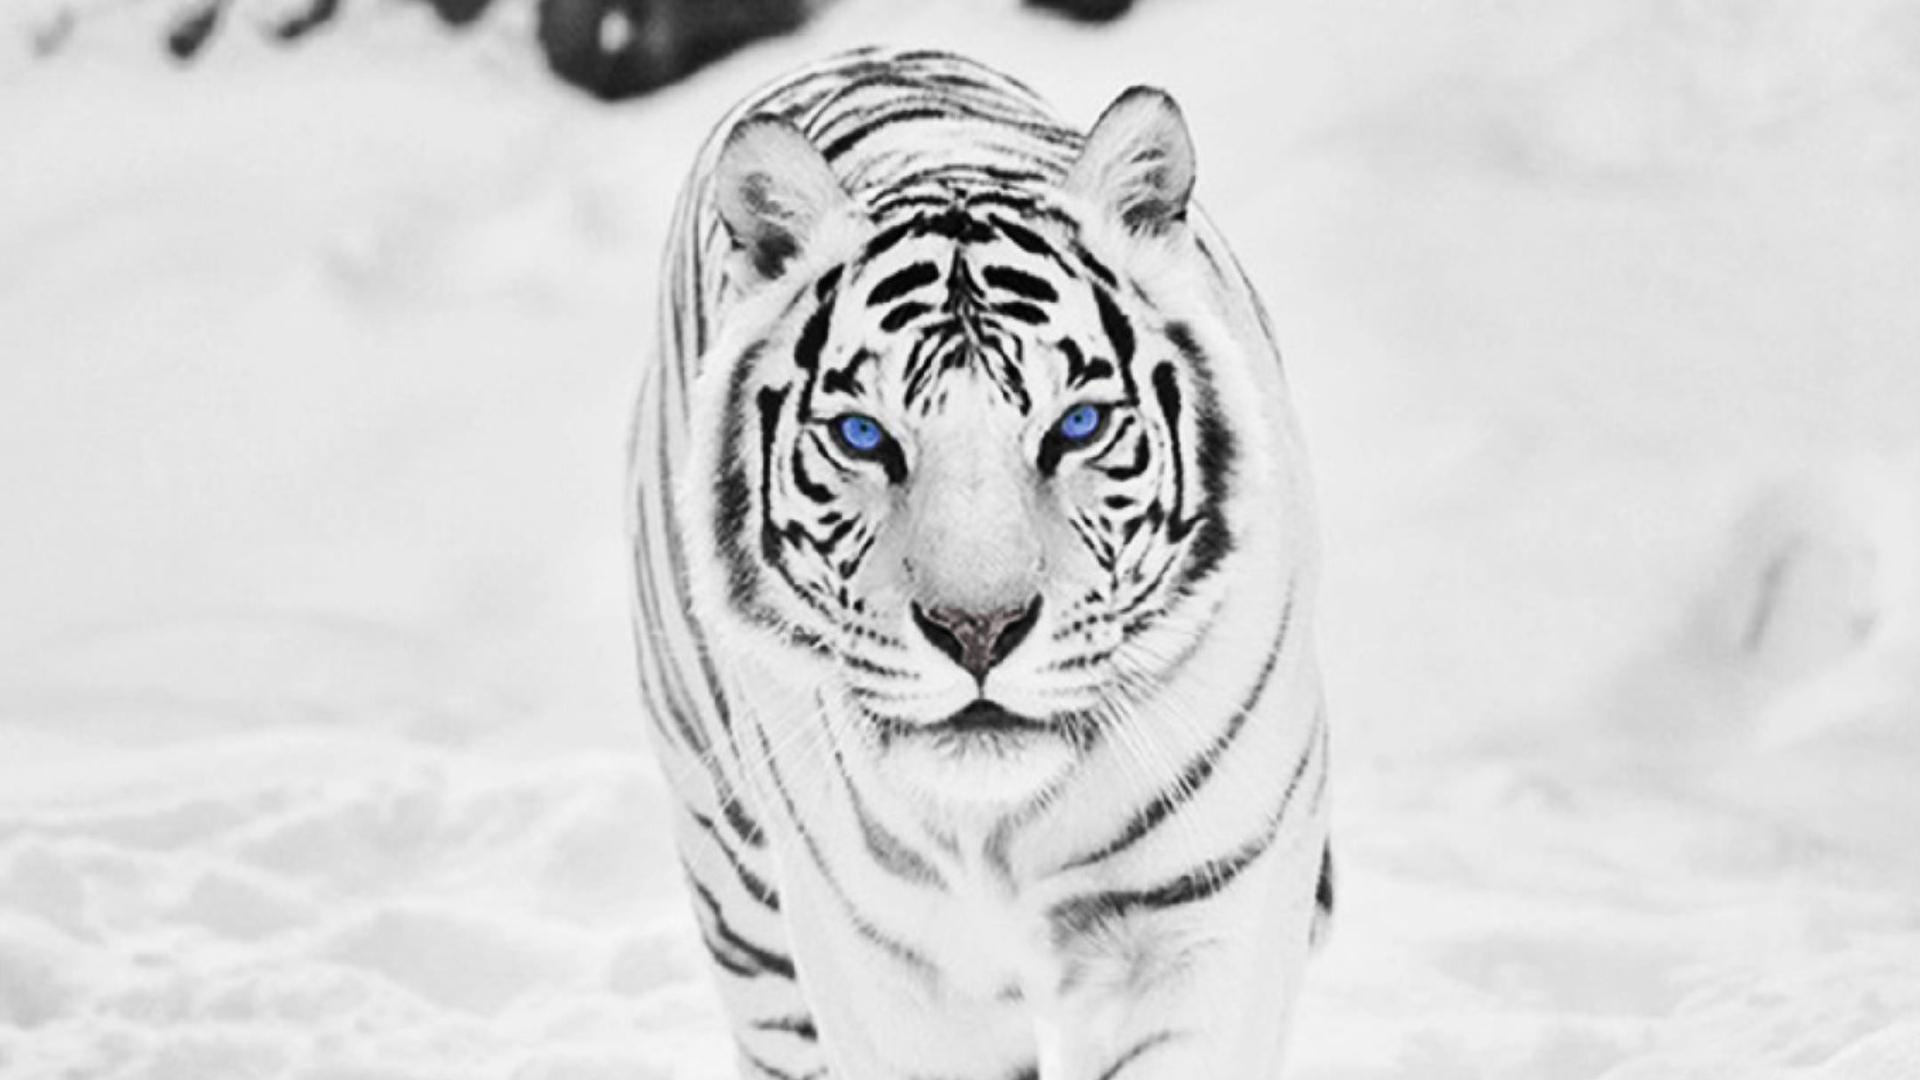 wallpaper hd white tiger - photo #37